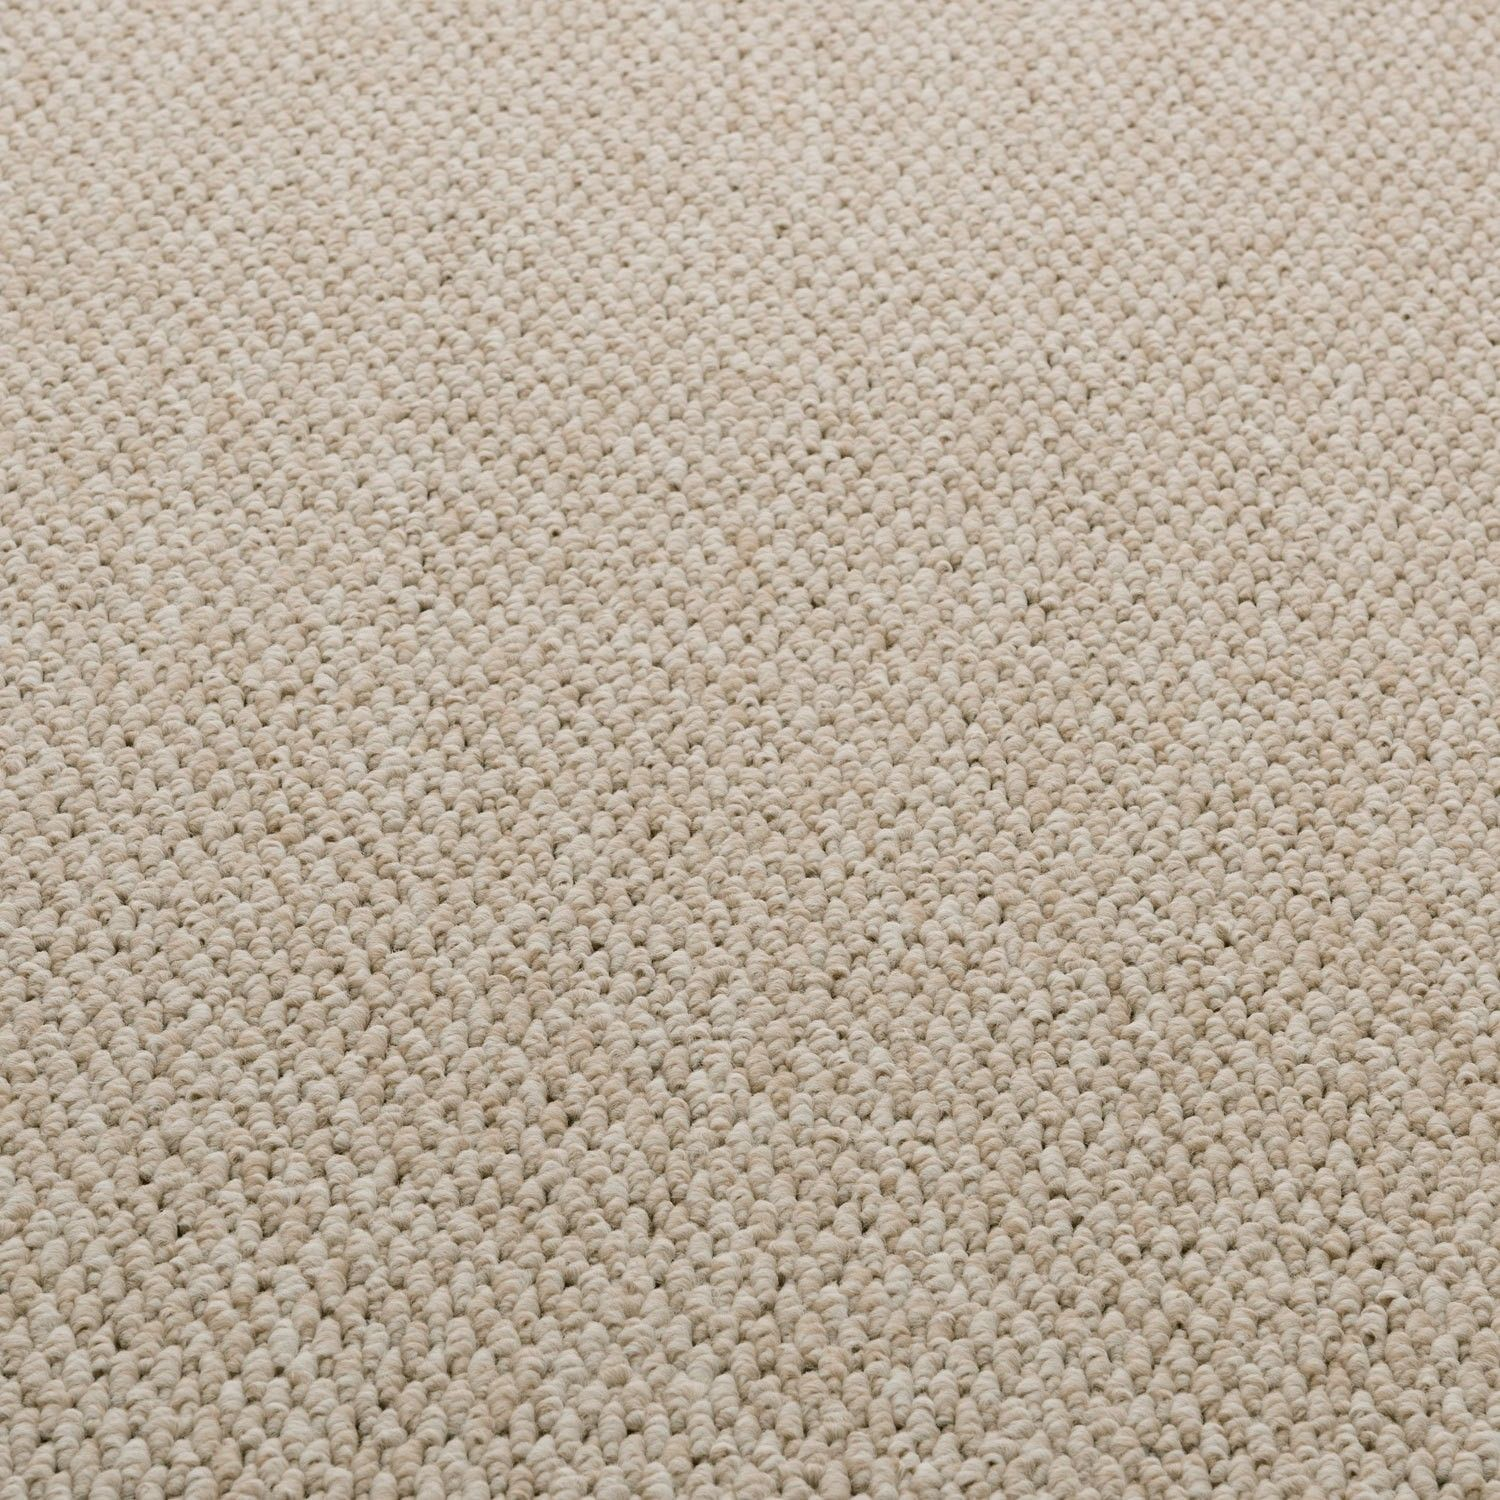 Nordic Berber Carpet In 2019 Bedroom Carpet Textured